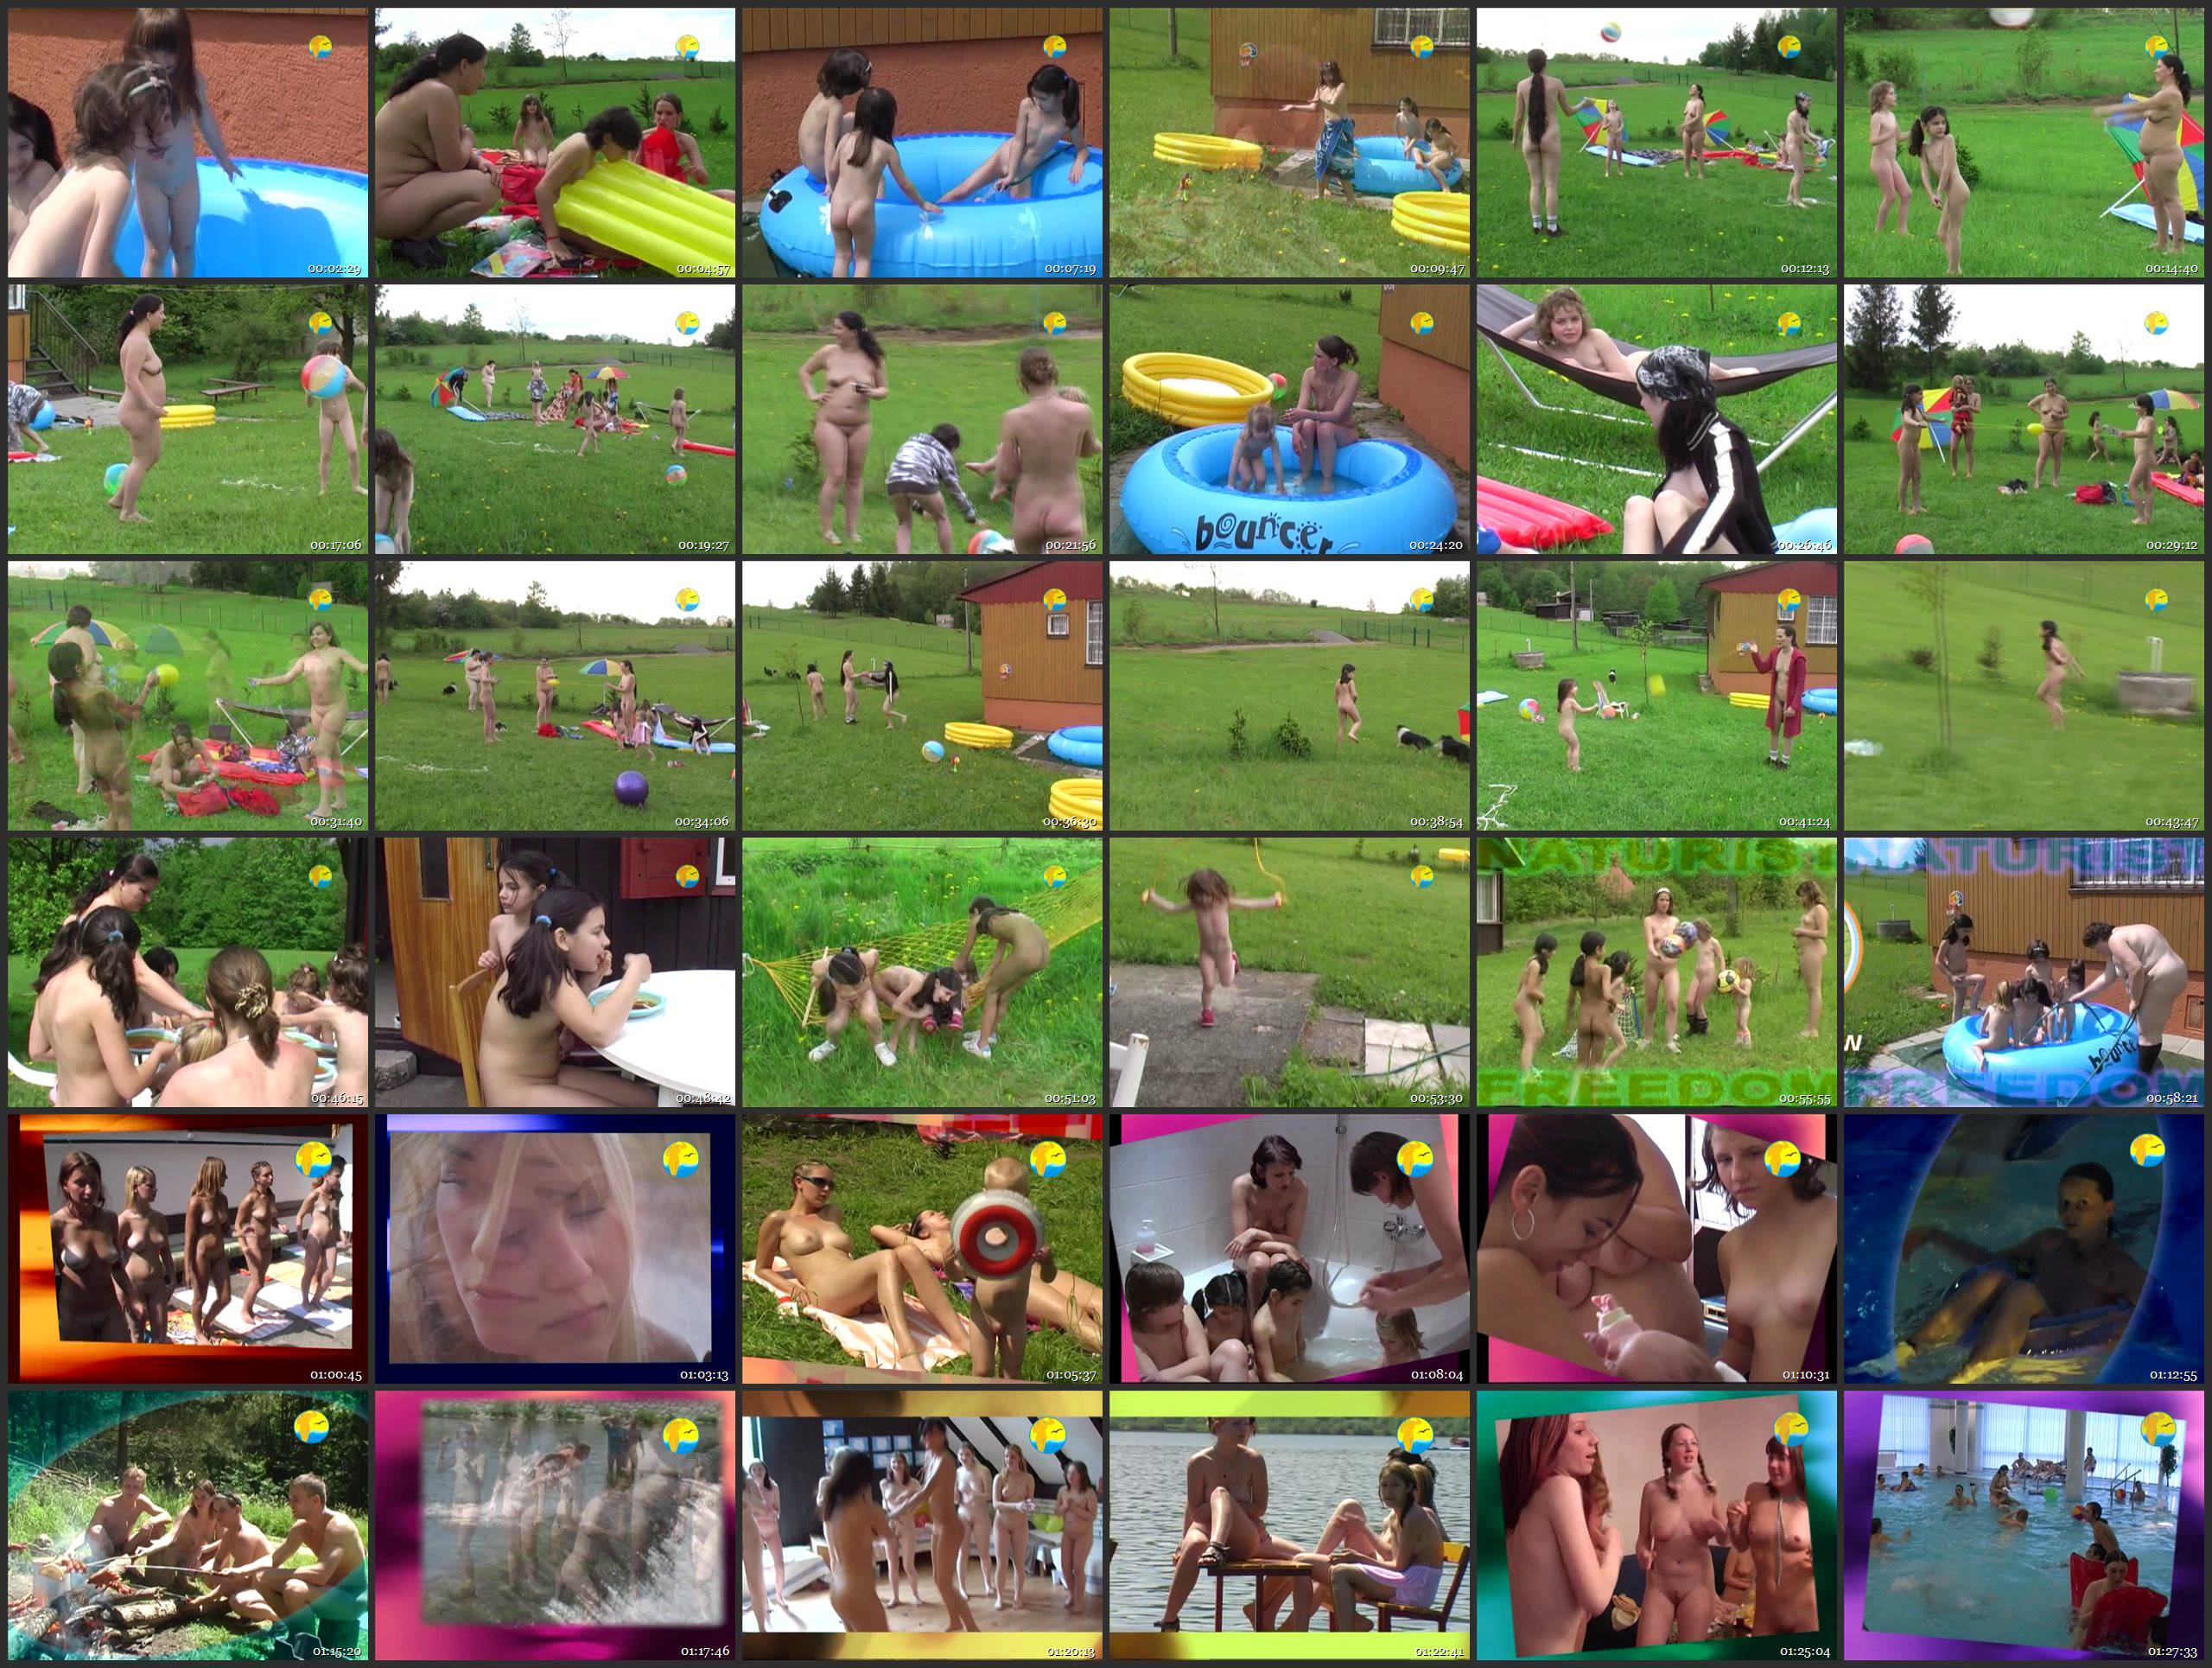 Naturist Freedom-Meadow - Thumbnails